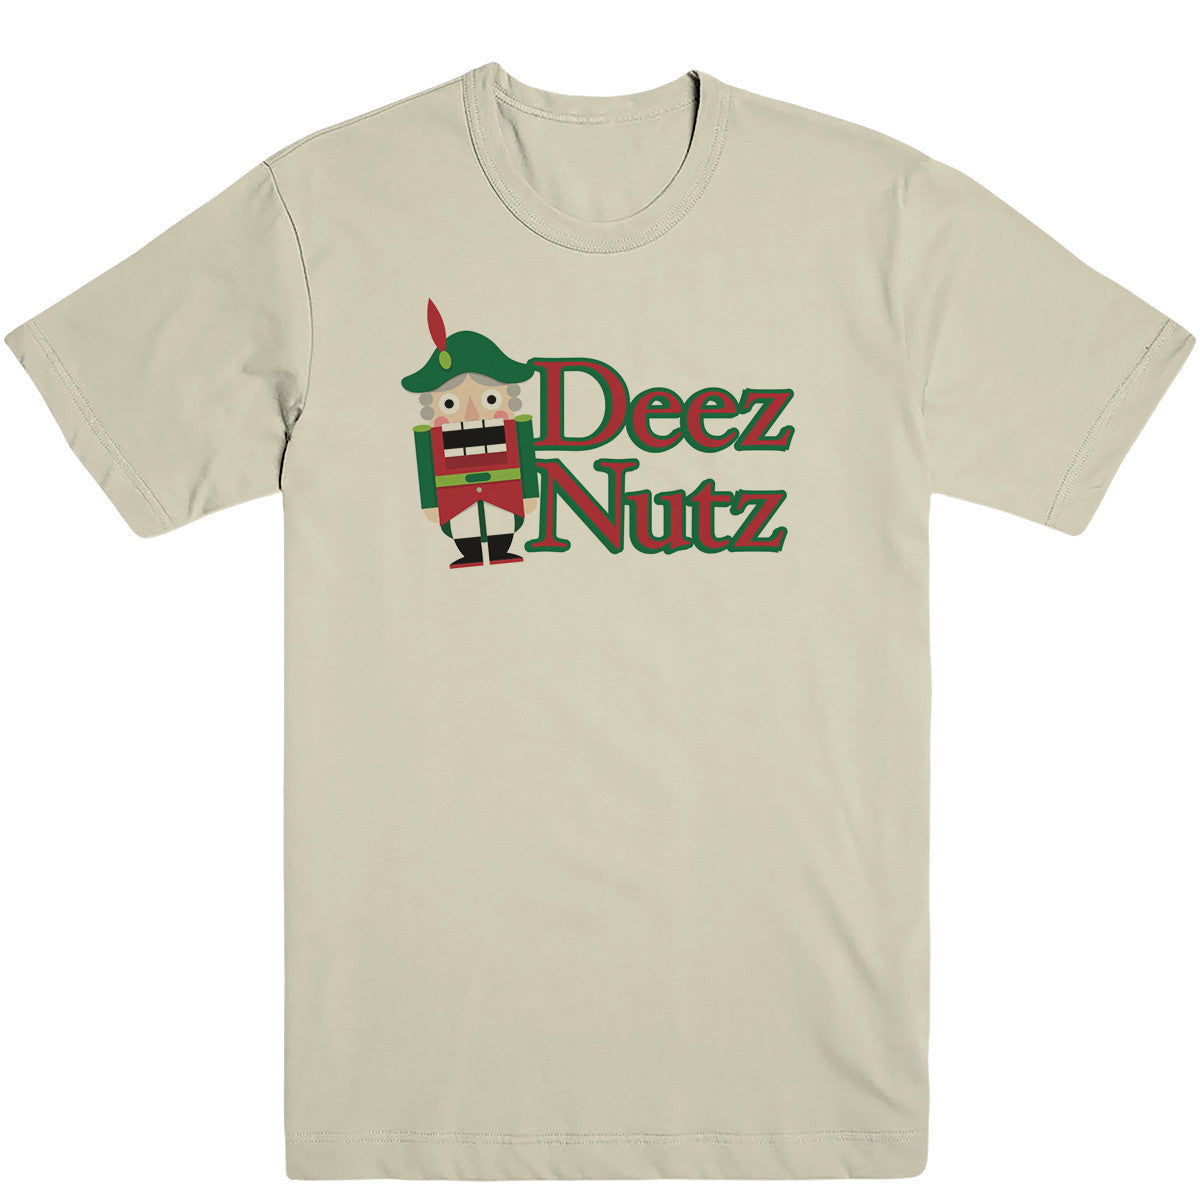 Deez Nutz Cracker Tee